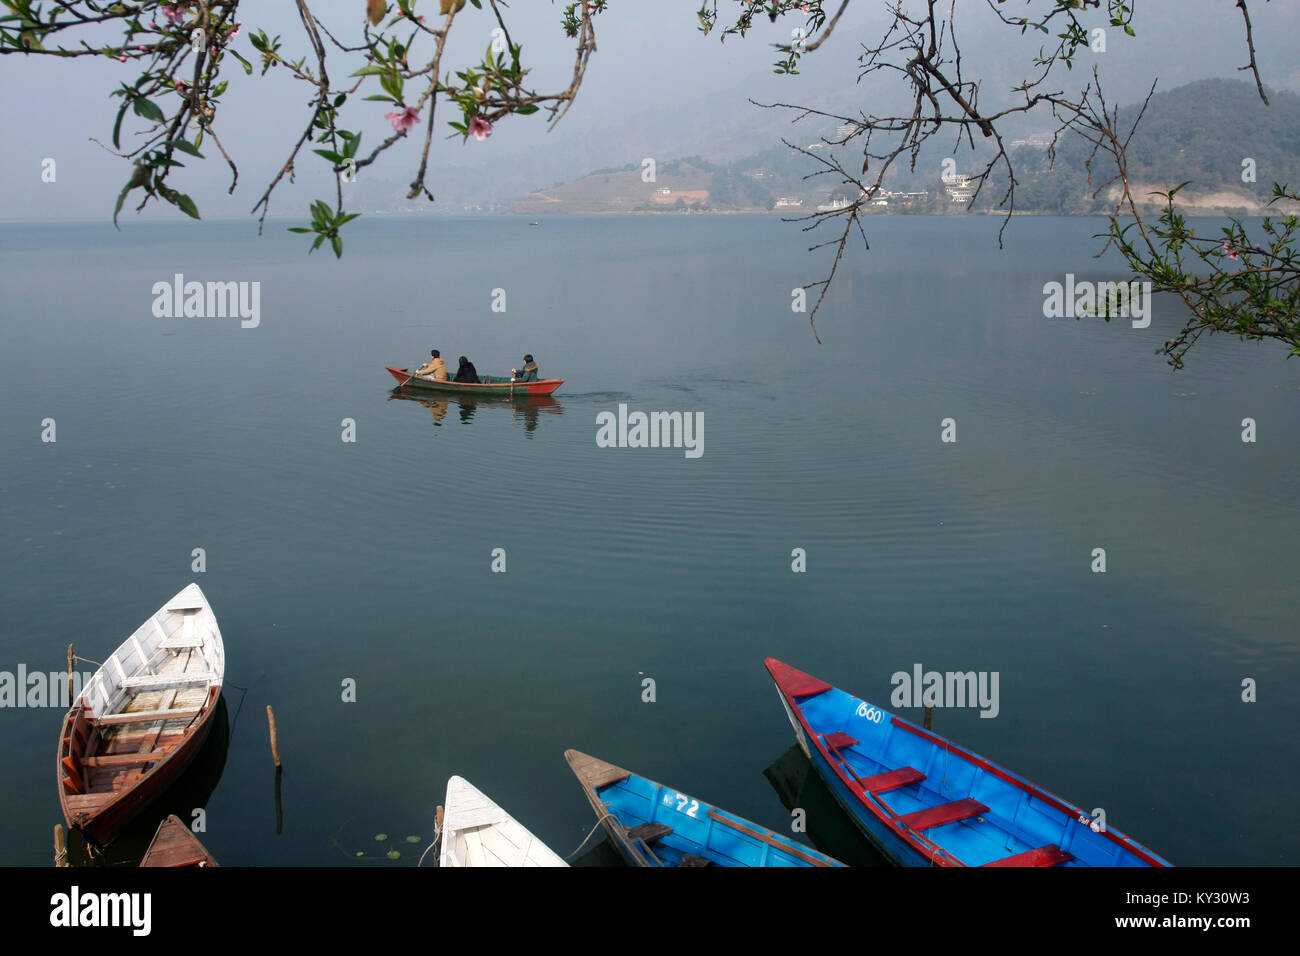 People boating in Fewa lake in Pokhara. - Stock Image